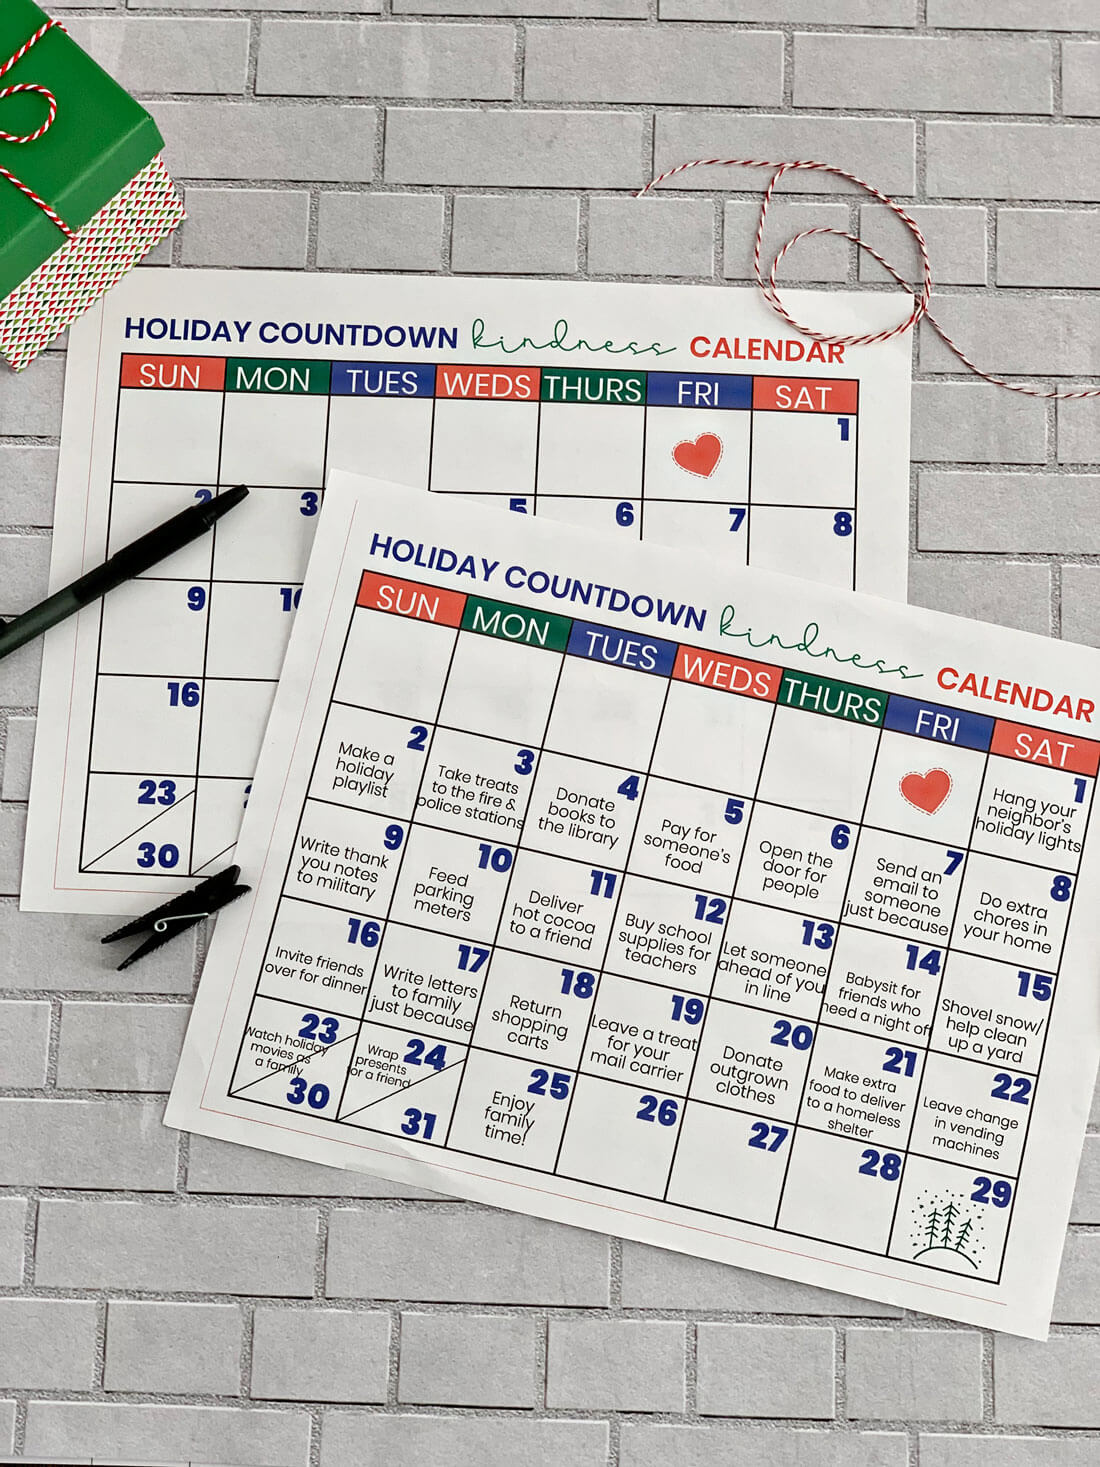 Christmas Countdown Kindness Calendar - spend this month doing random acts of kindness! from www.thirtyhandmadedays.com